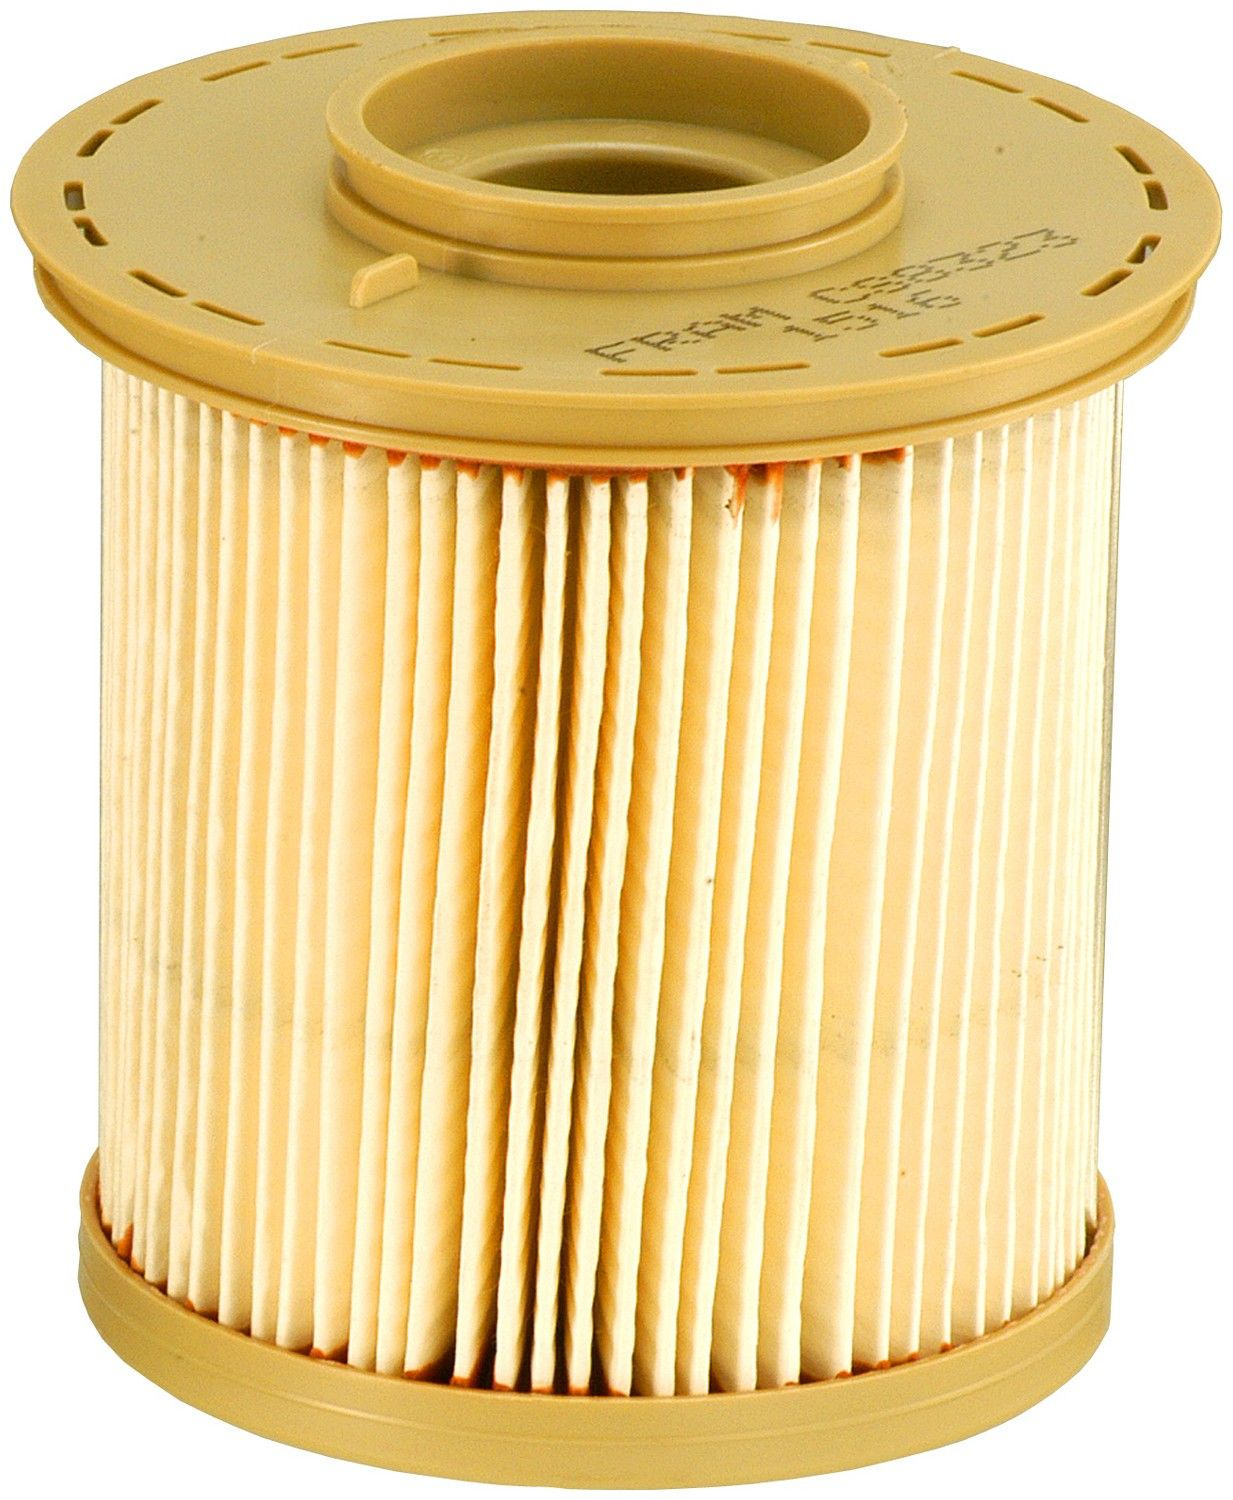 1997 Dodge Ram Fuel Filter Location 2500 Replacement Fram Full Hastings Mahle 6 Cyl 59l Cs8323 Cartridge Water Separator